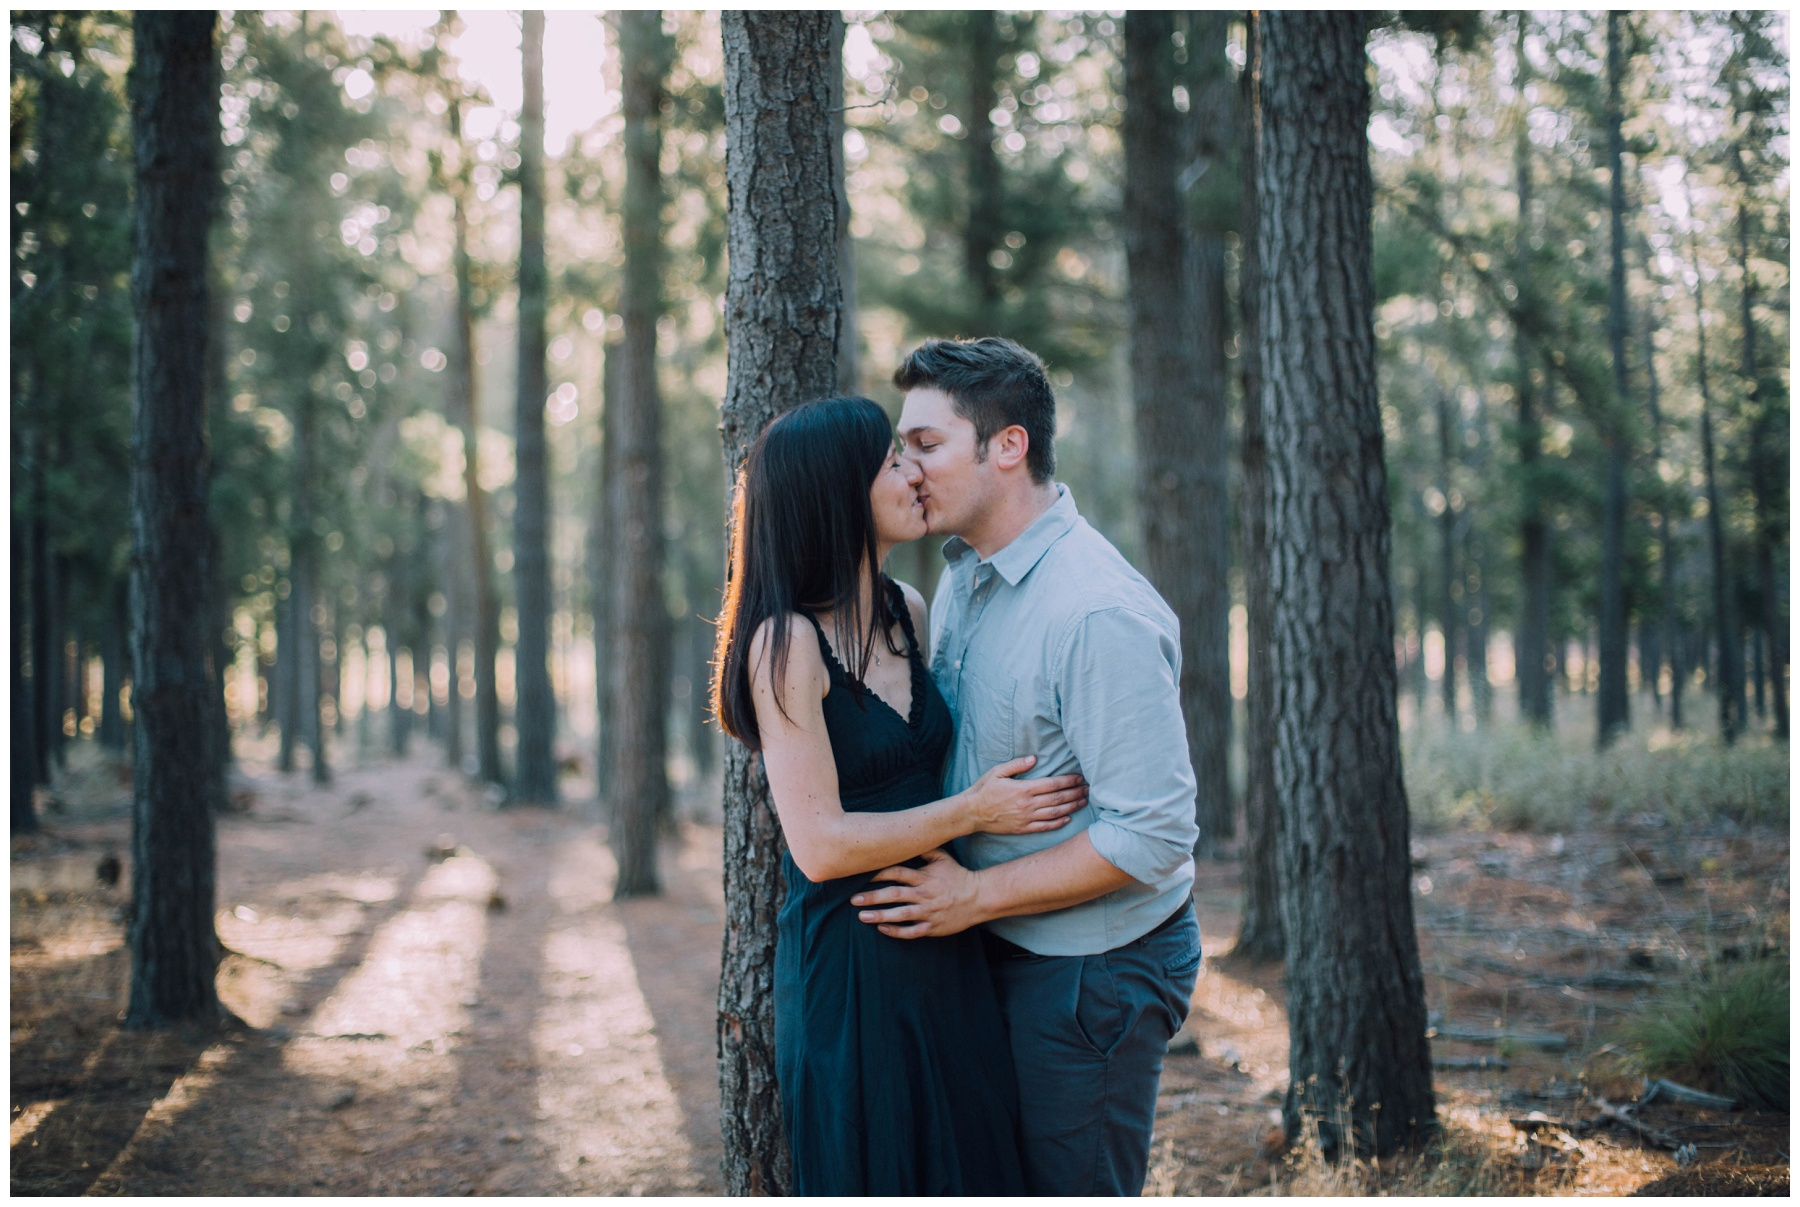 Ronel Kruger Cape Town Wedding and Lifestyle Photographer_1522.jpg